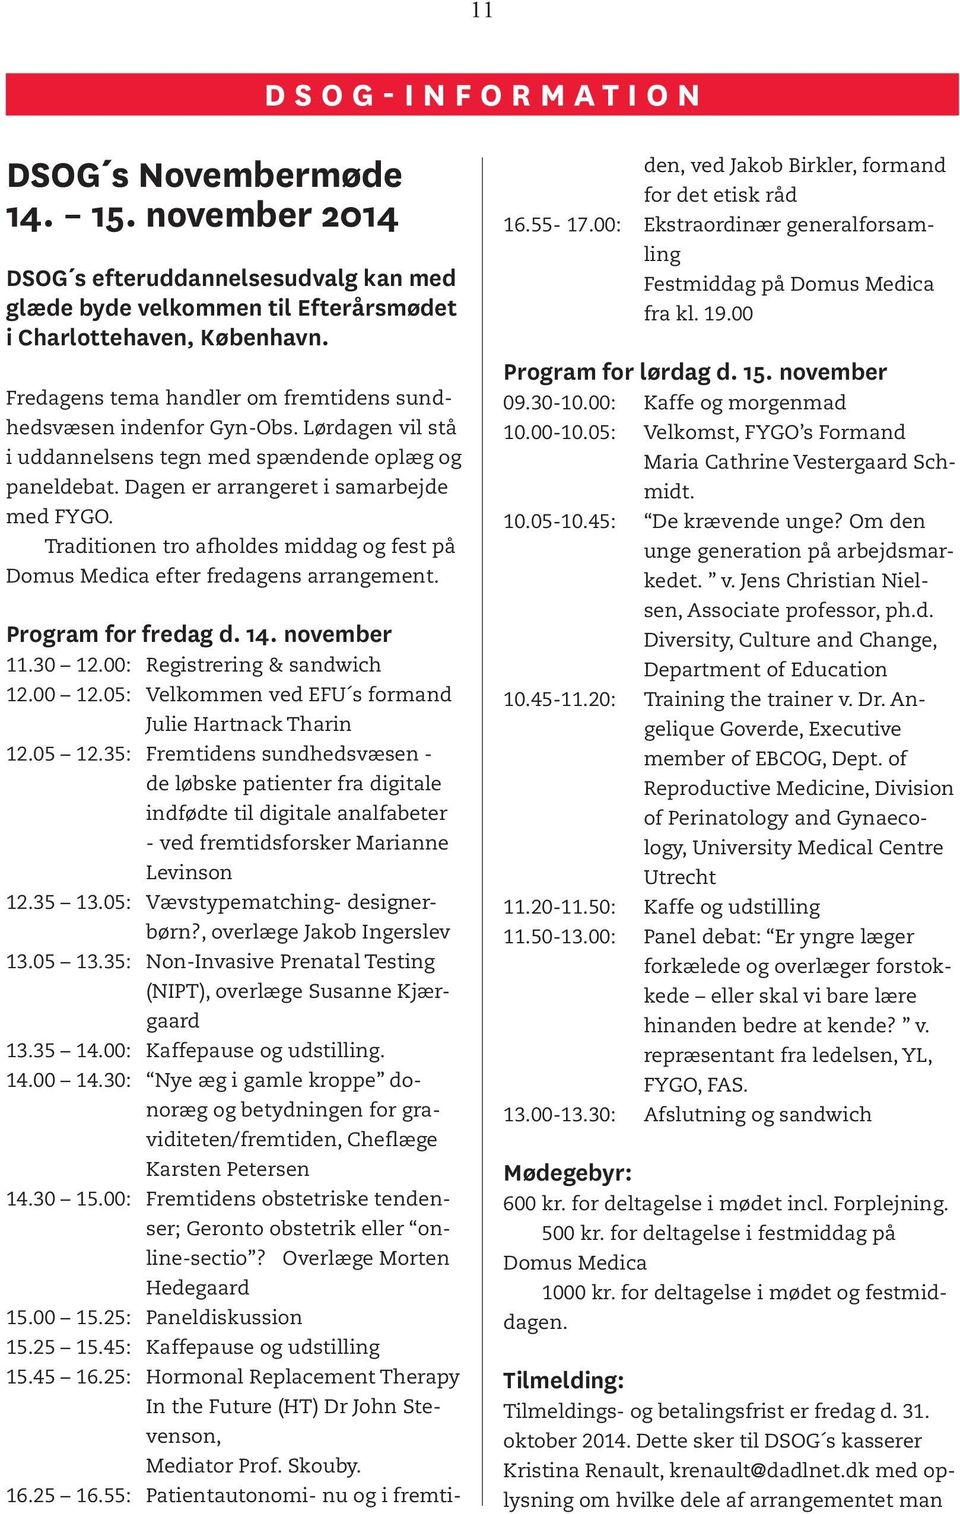 Traditionen tro afholdes middag og fest på Domus Medica efter fredagens arrangement. Program for fredag d. 14. november 11.30 12.00: Registrering & sandwich 12.00 12.